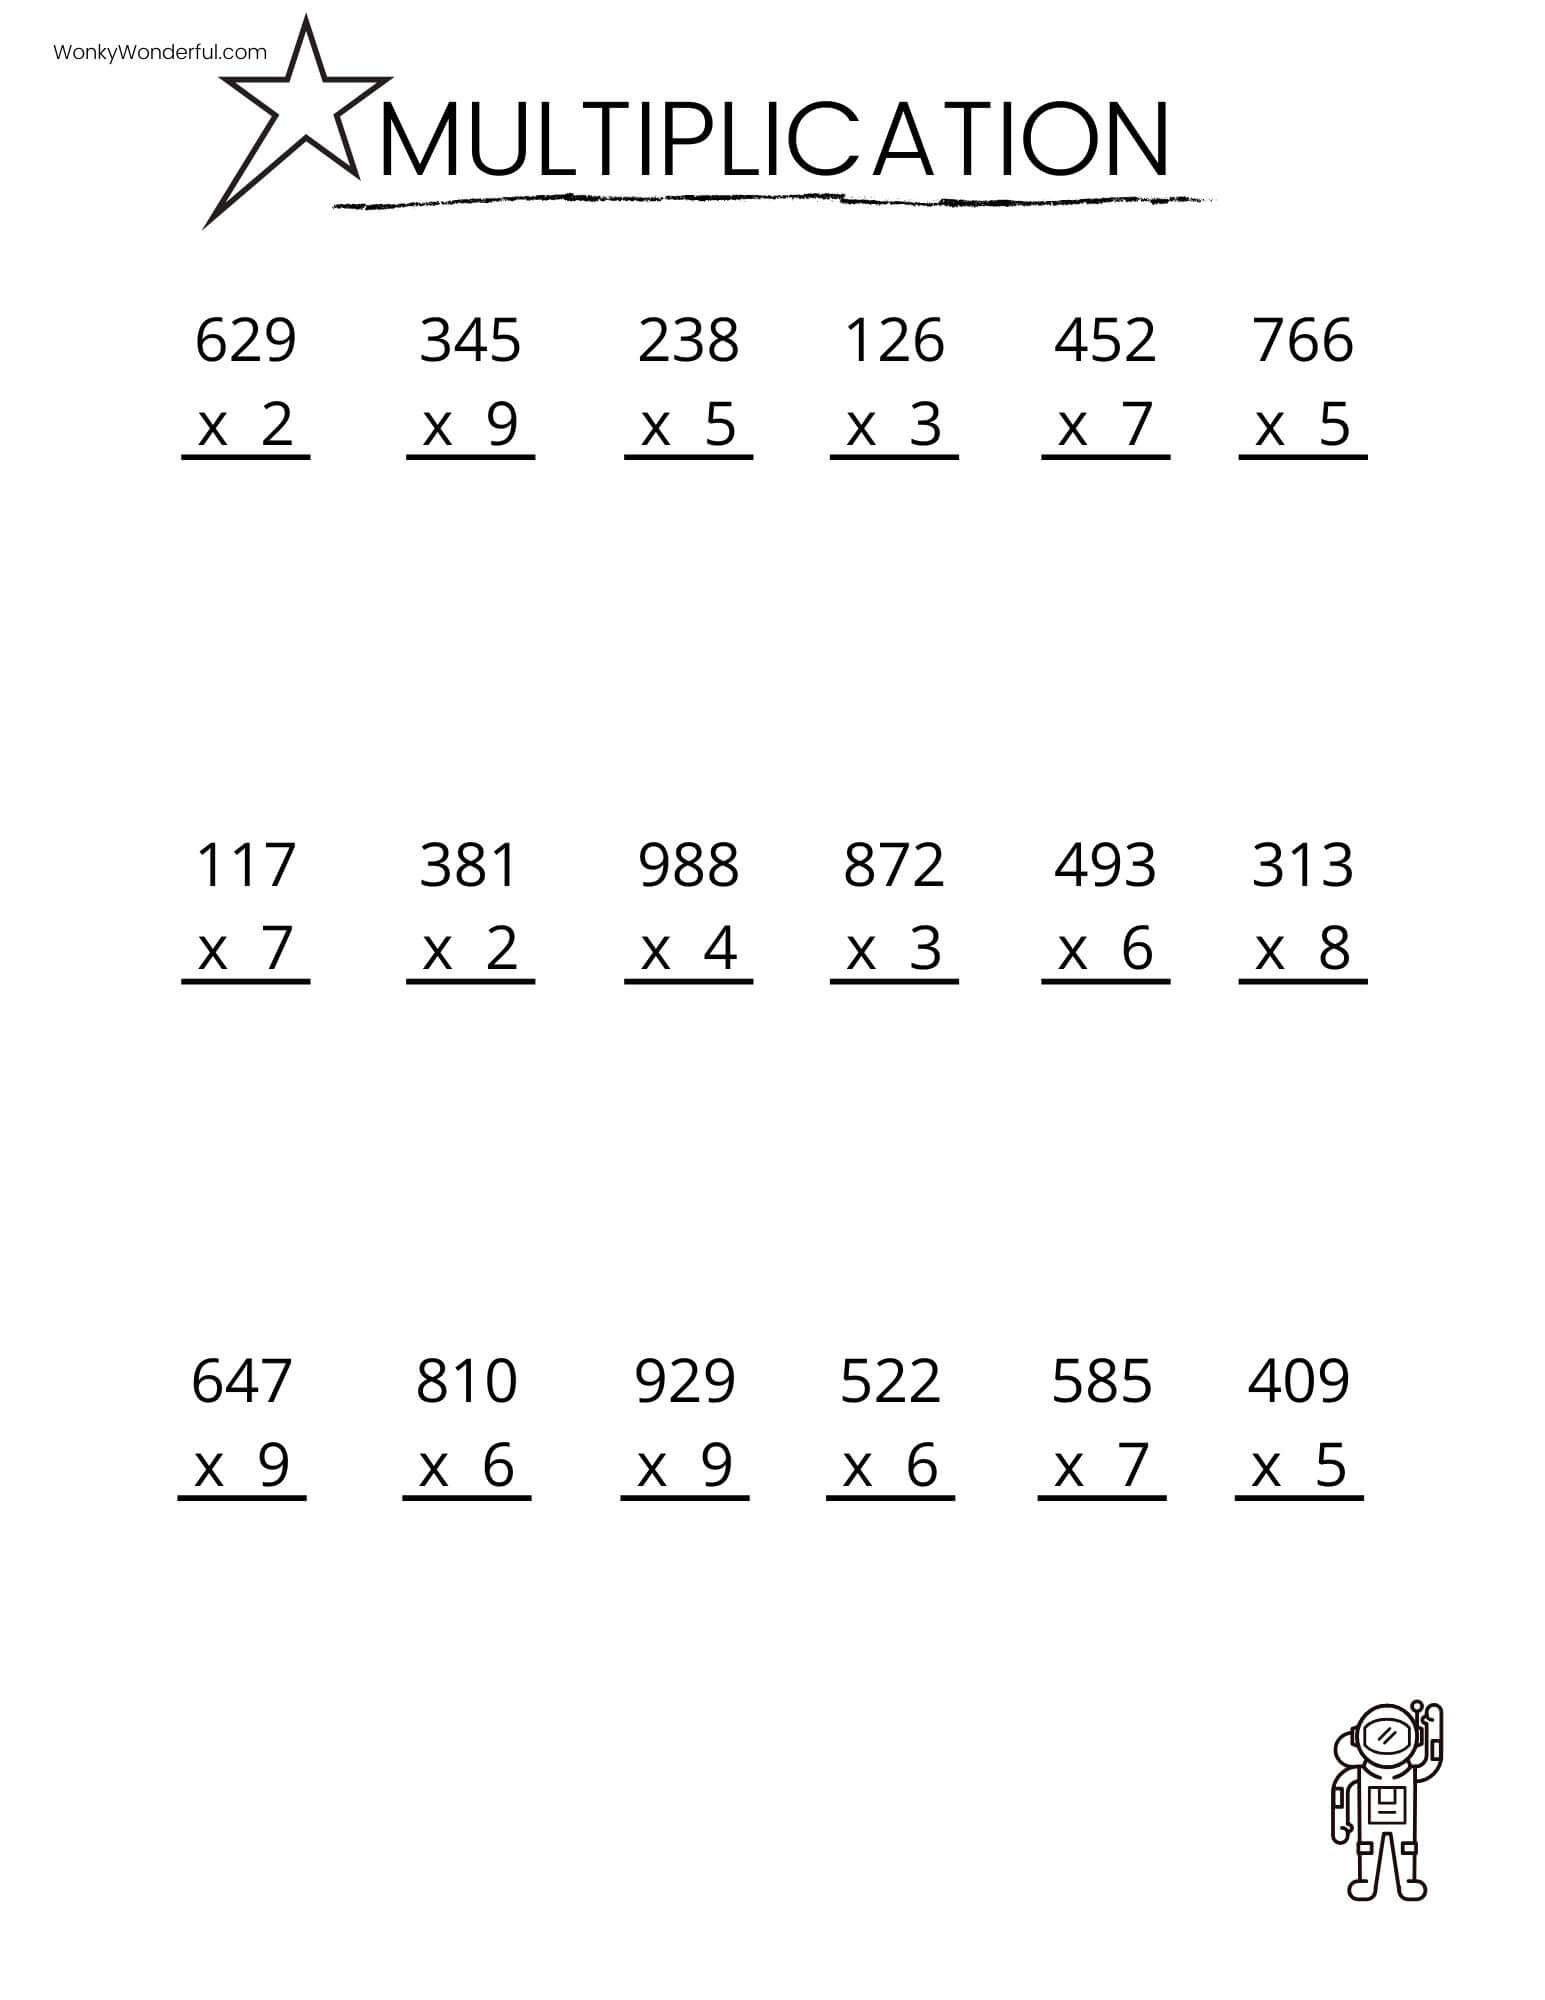 medium resolution of FREE PRINTABLE MULTIPLICATION WORKSHEETS + WonkyWonderful